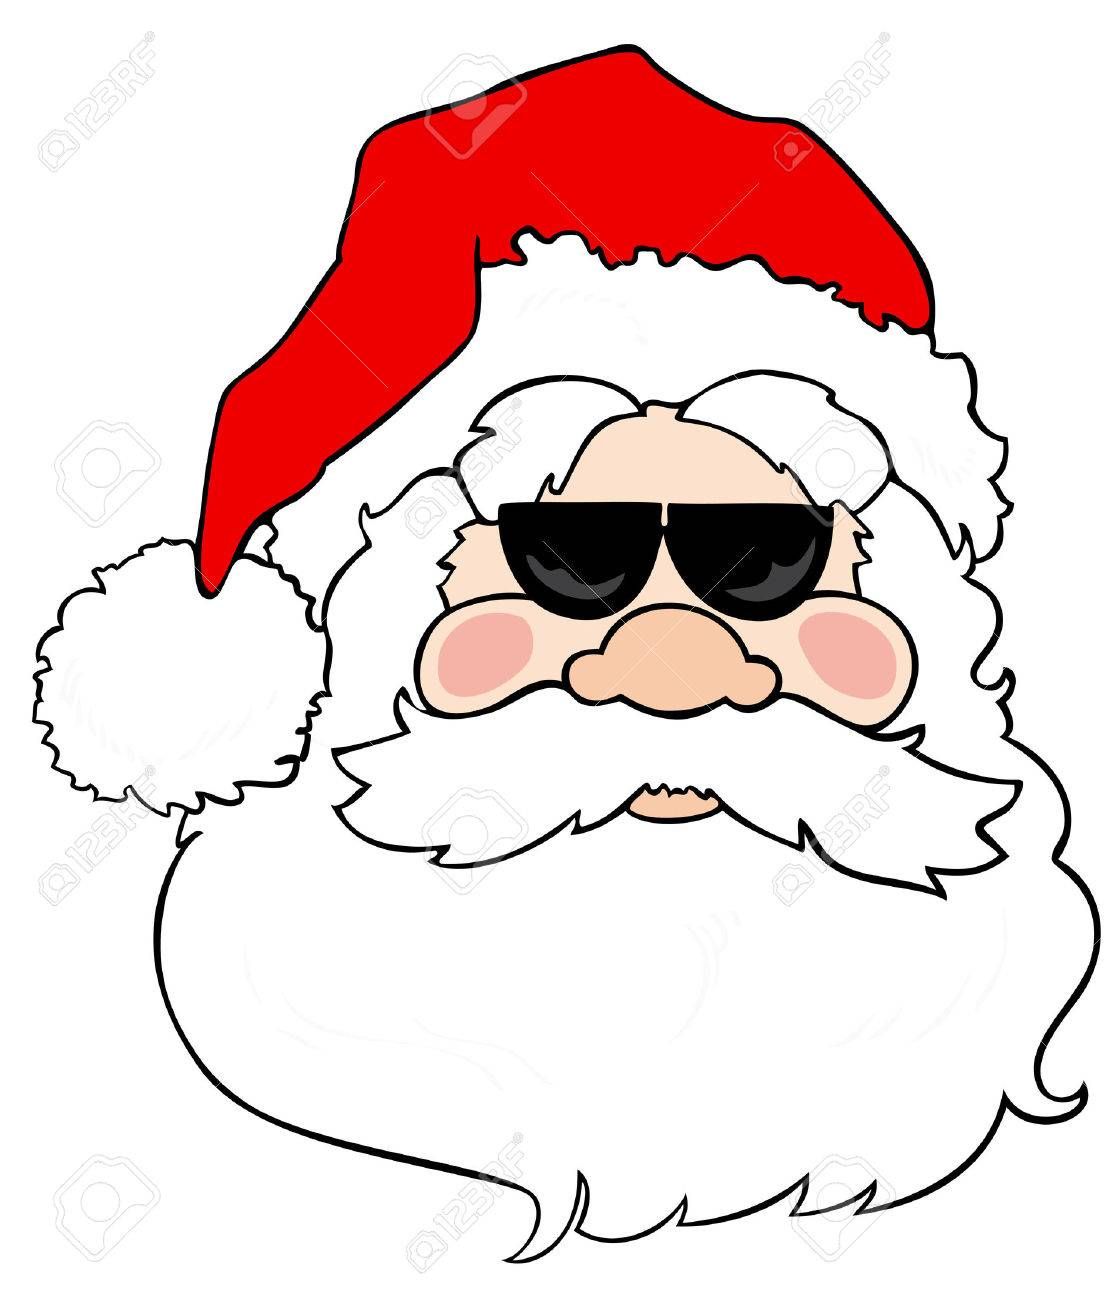 Santa Claus with sunglasses. Stock Vector - 8259608